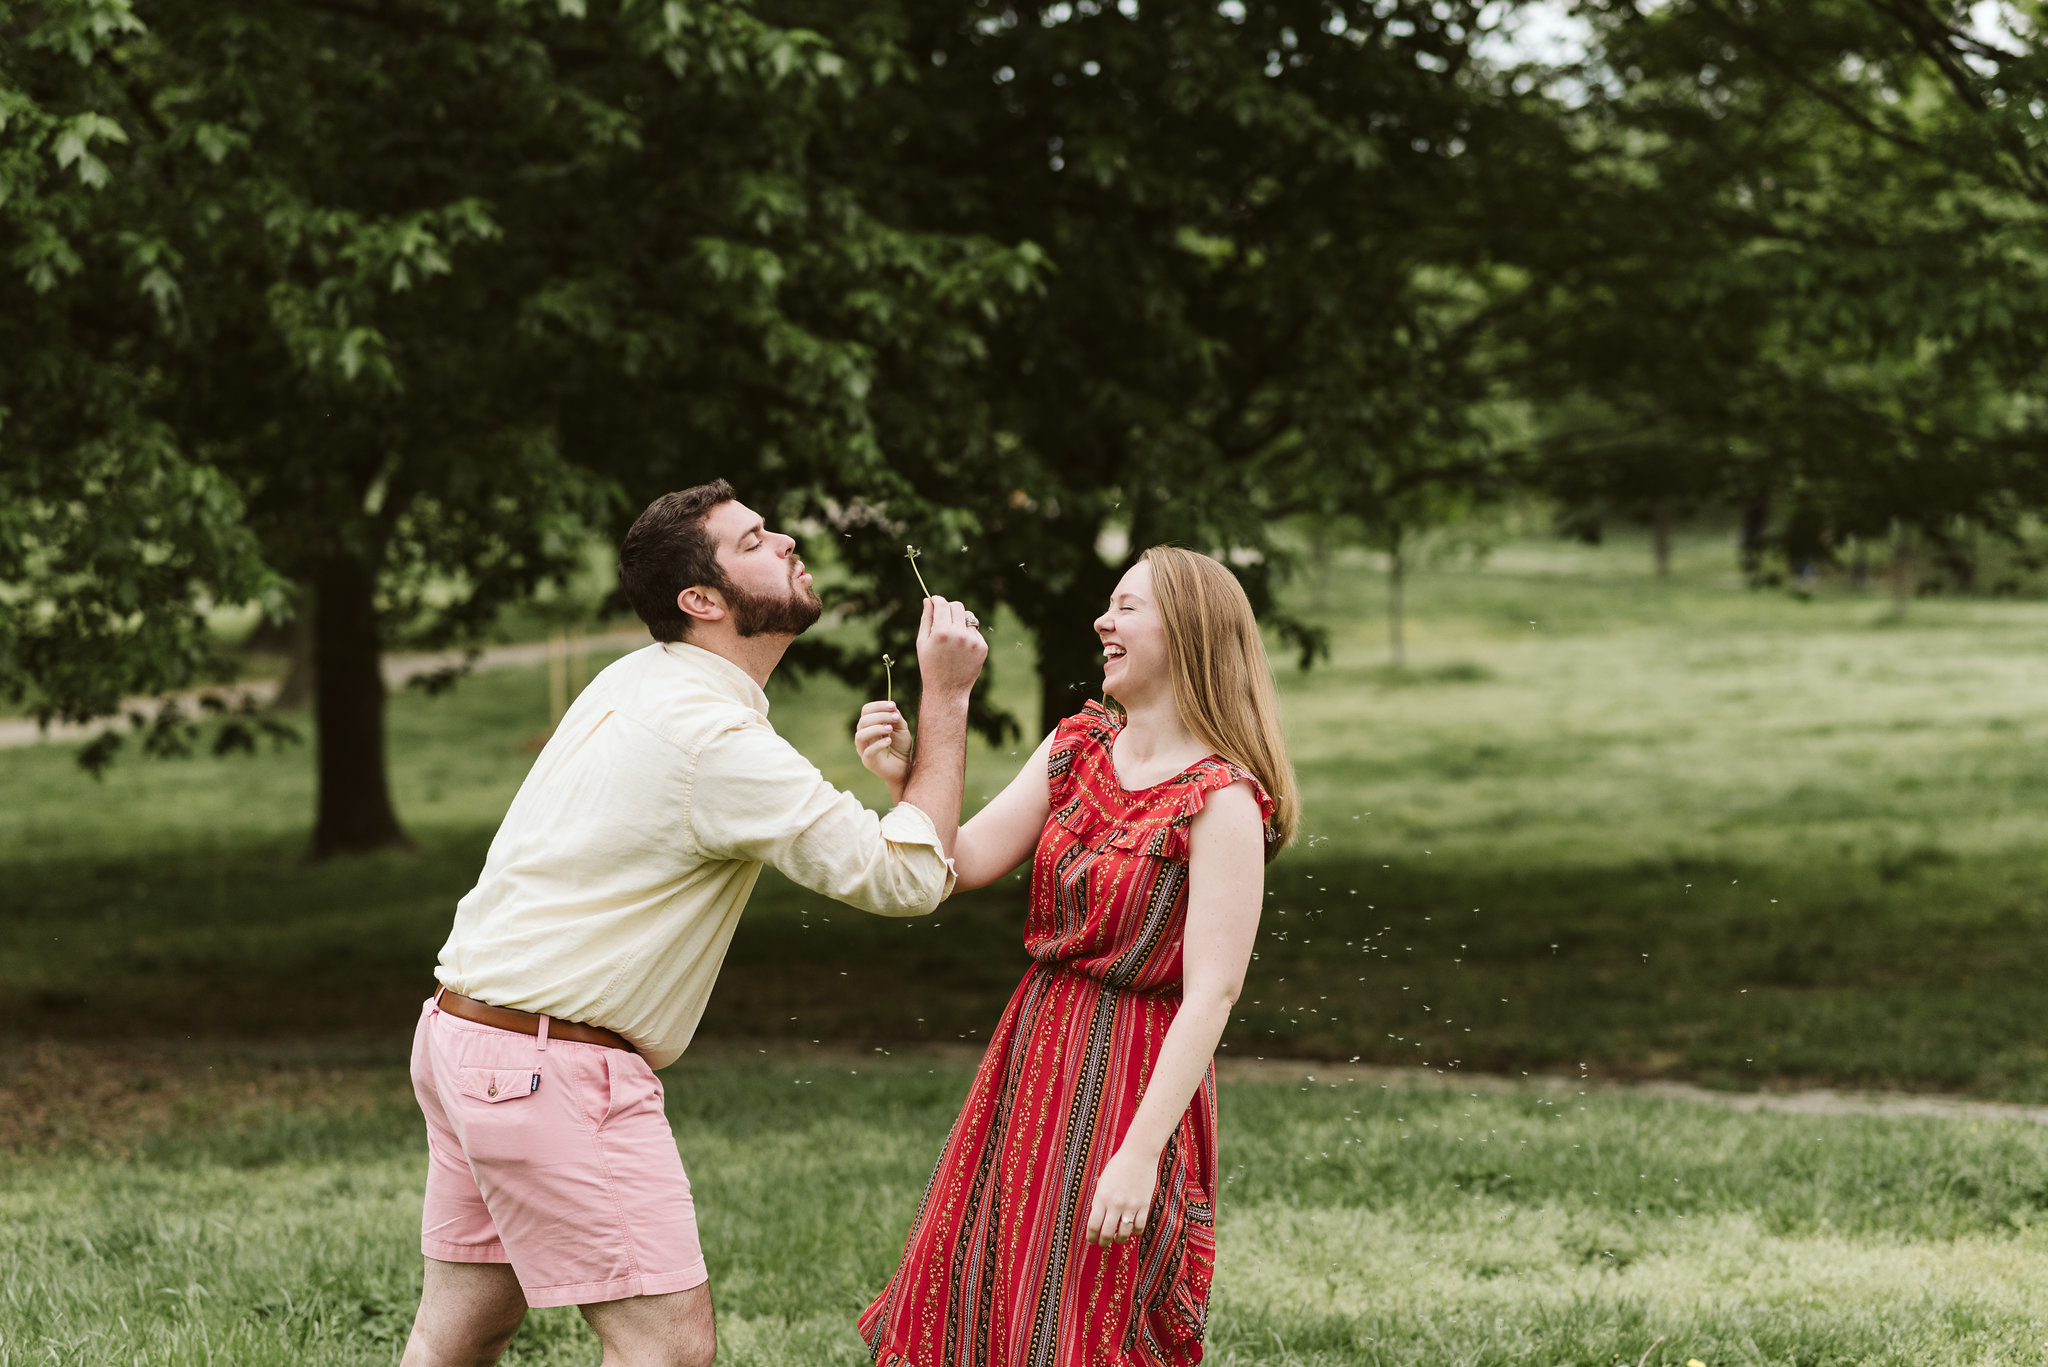 Engagement Photos, Patterson Park, Baltimore, Maryland Wedding Photographer, Casual, Fun, Nature, Silly Photo of Bride and Groom Blowing on Dandelions, Couple Laughing Together